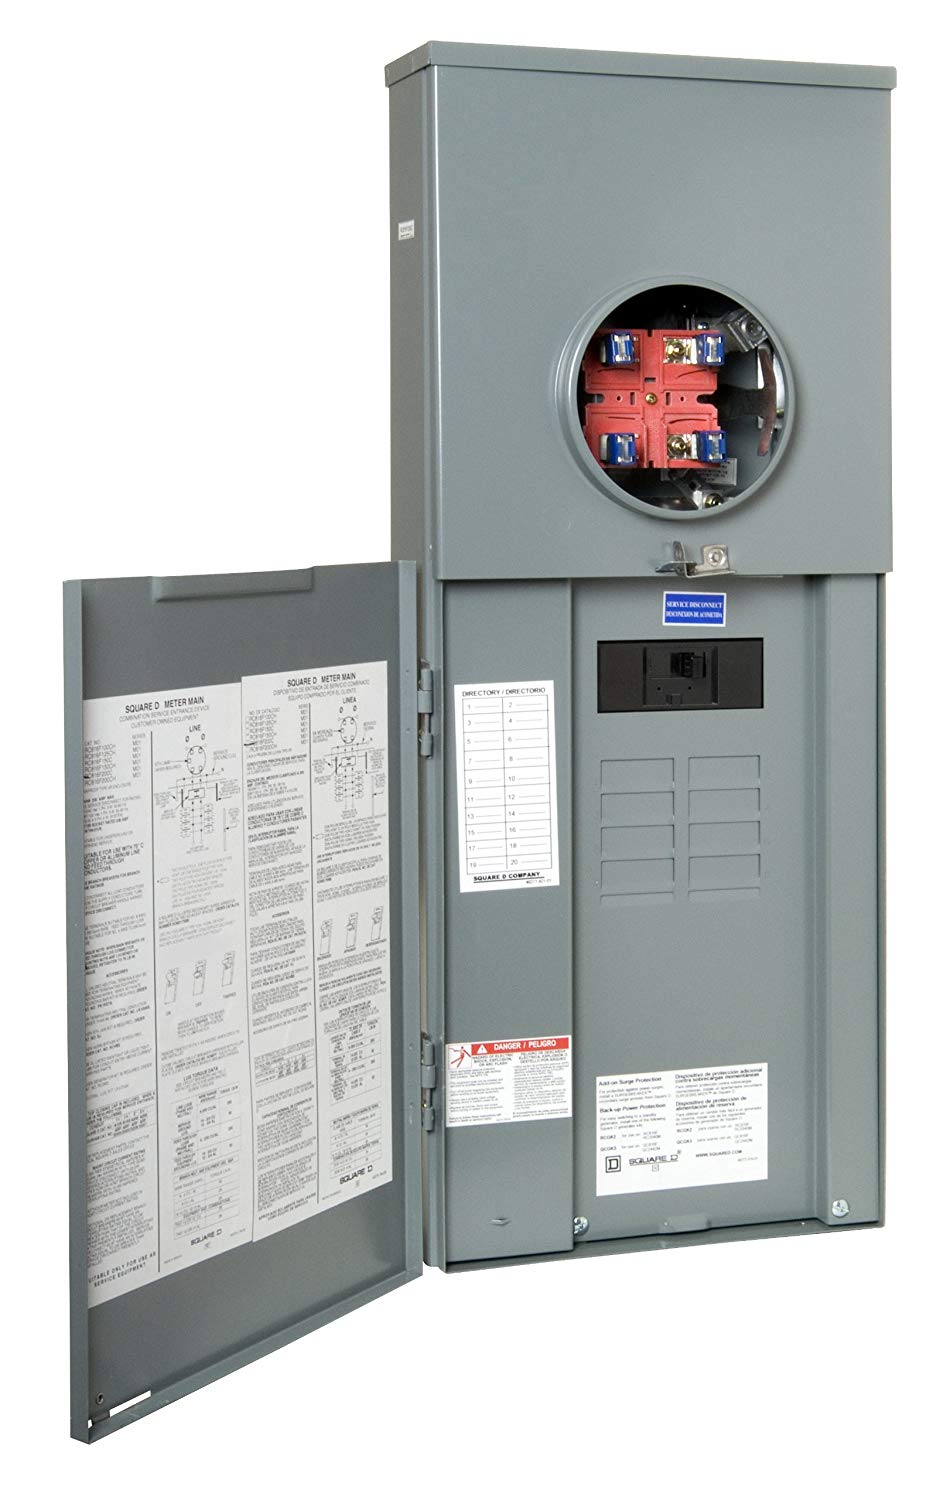 New Circuit Panel Box Electrical Service Upgrade Krh